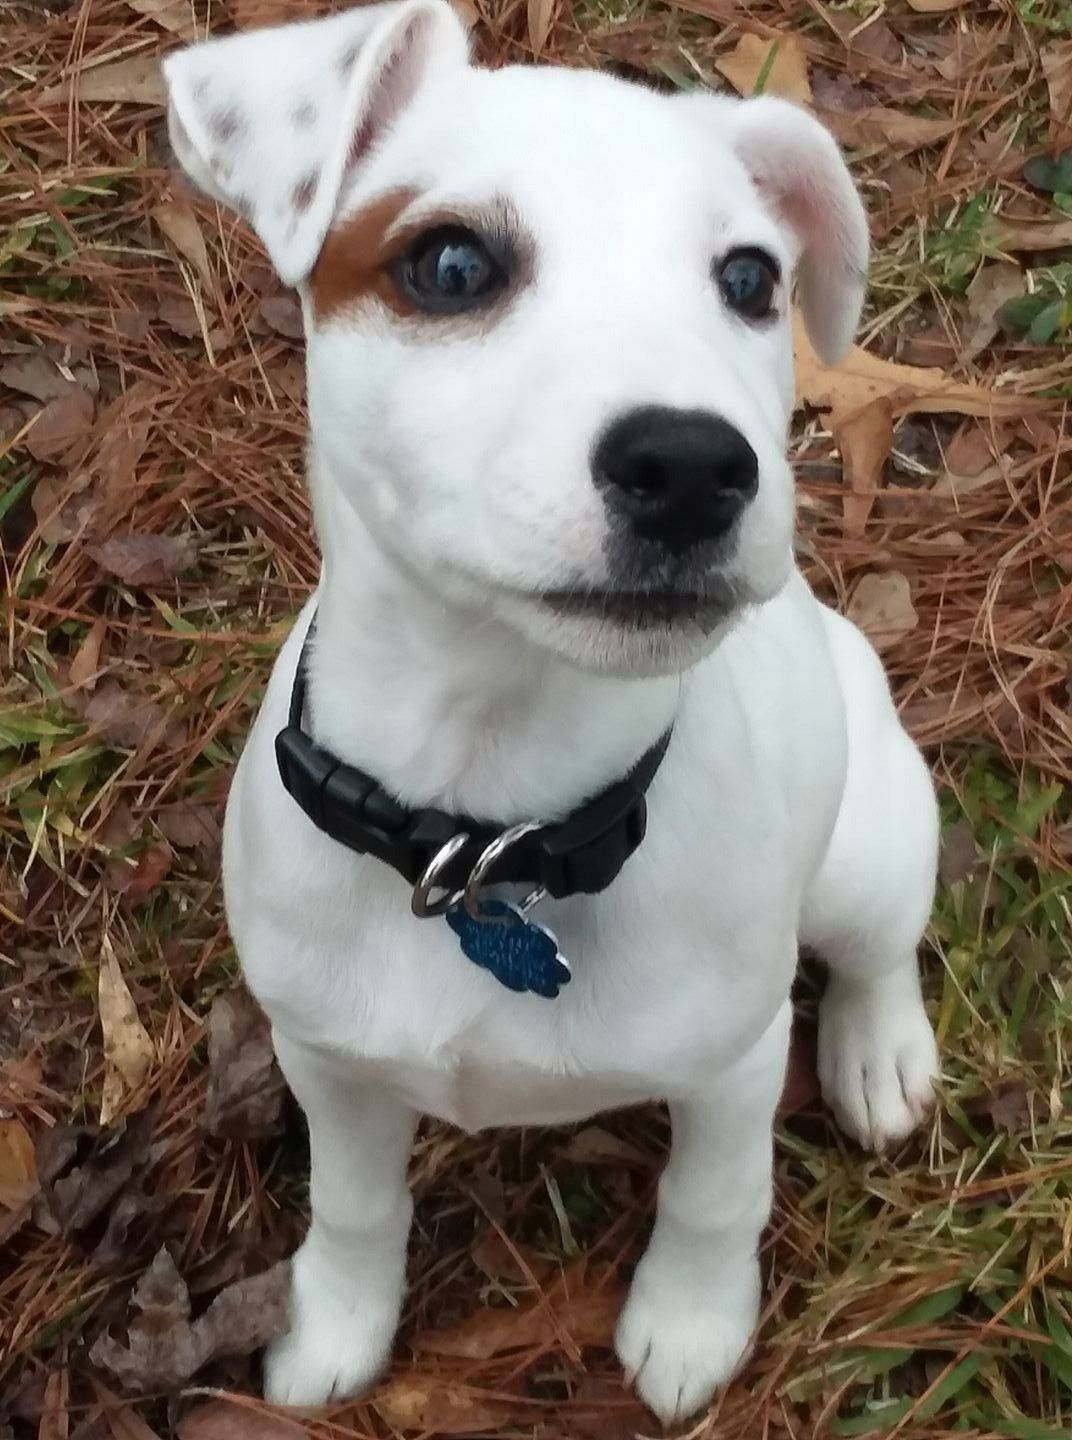 Pin By Holly Mitchell On Jack Russell Terrier Jack Russell Baby Dogs Cute Animals